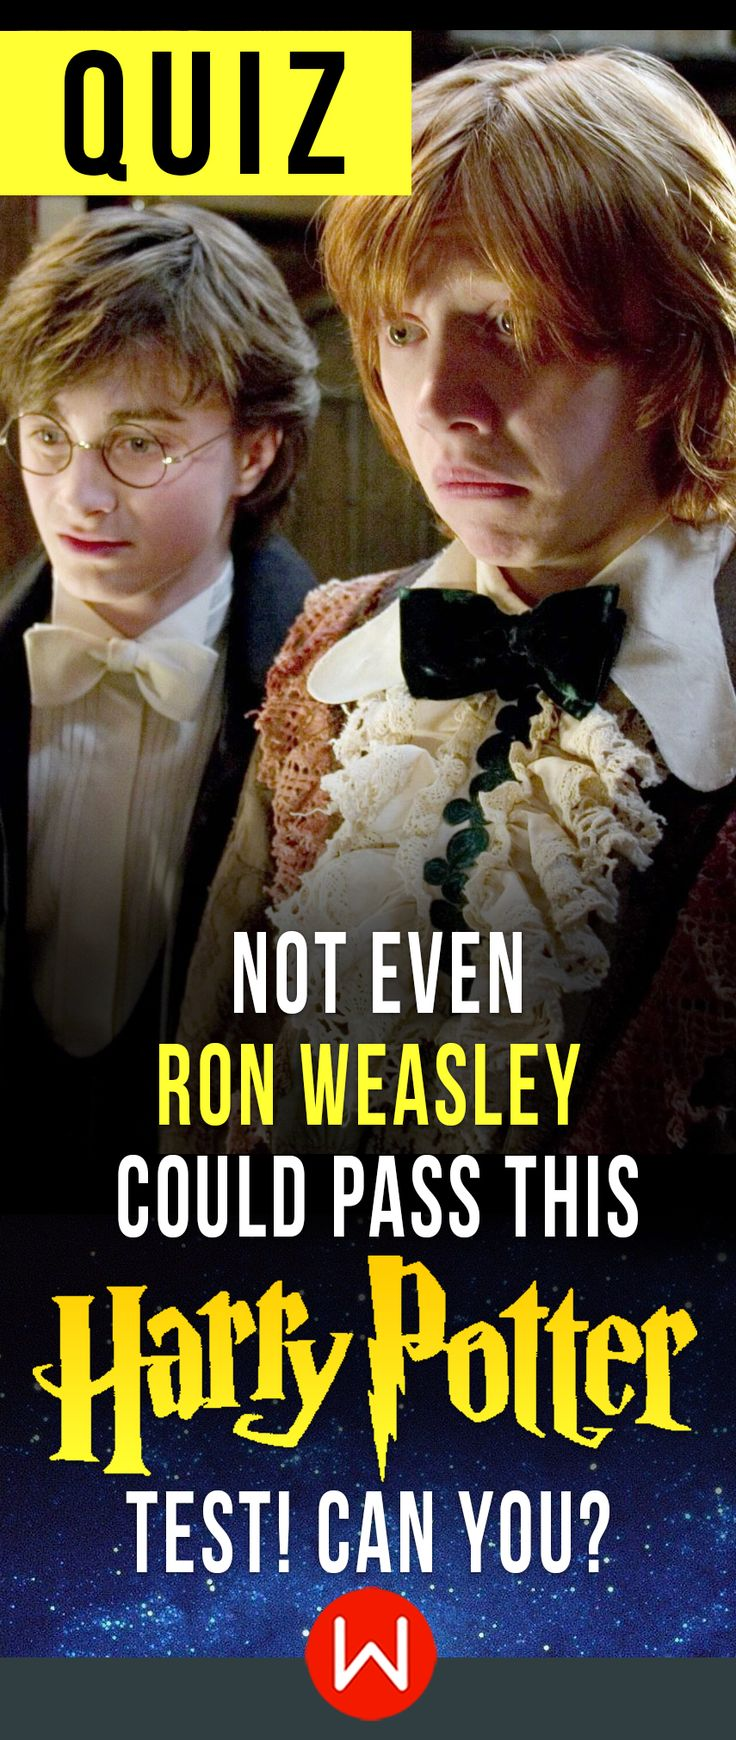 Are you smarter than Ron Weasley? HP trivia test. Do you think you know EVERYTHING about Harry Potter? Test your Harry Potter Knowledge on this HP quiz. JK Rowling. Ron Weasley.